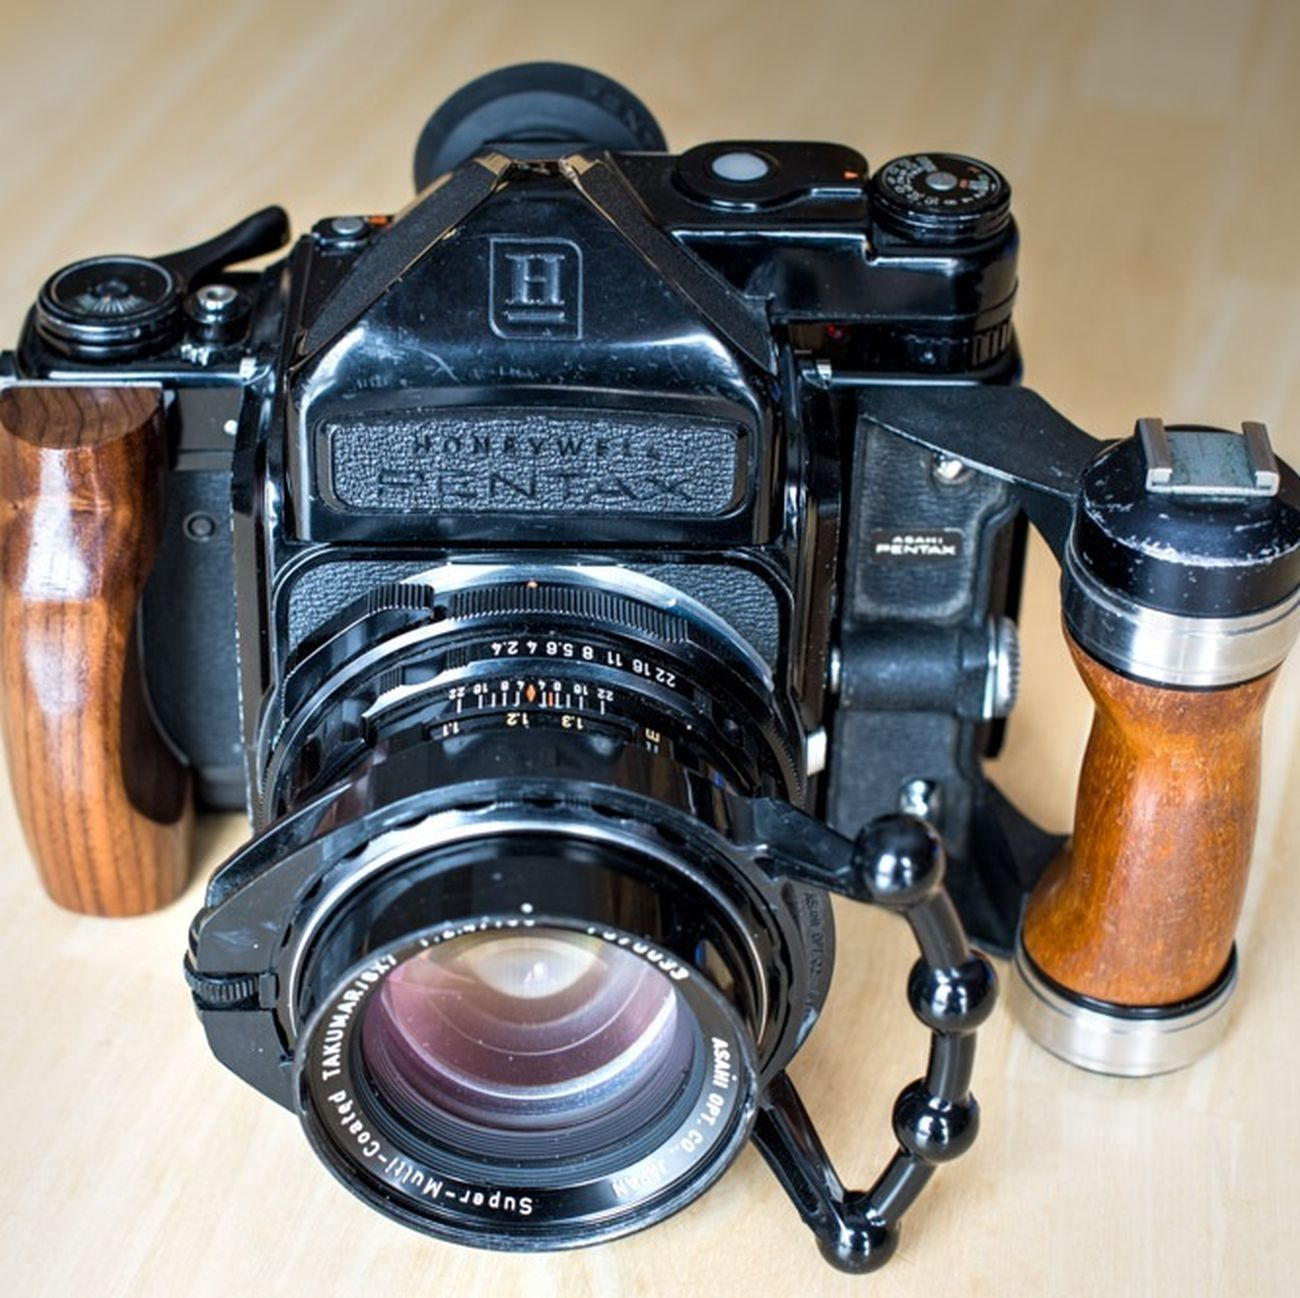 Here's to shooting more Film in 2014. PENTAX67 with dual wood grip and Takumar 105mm f2.4 lens